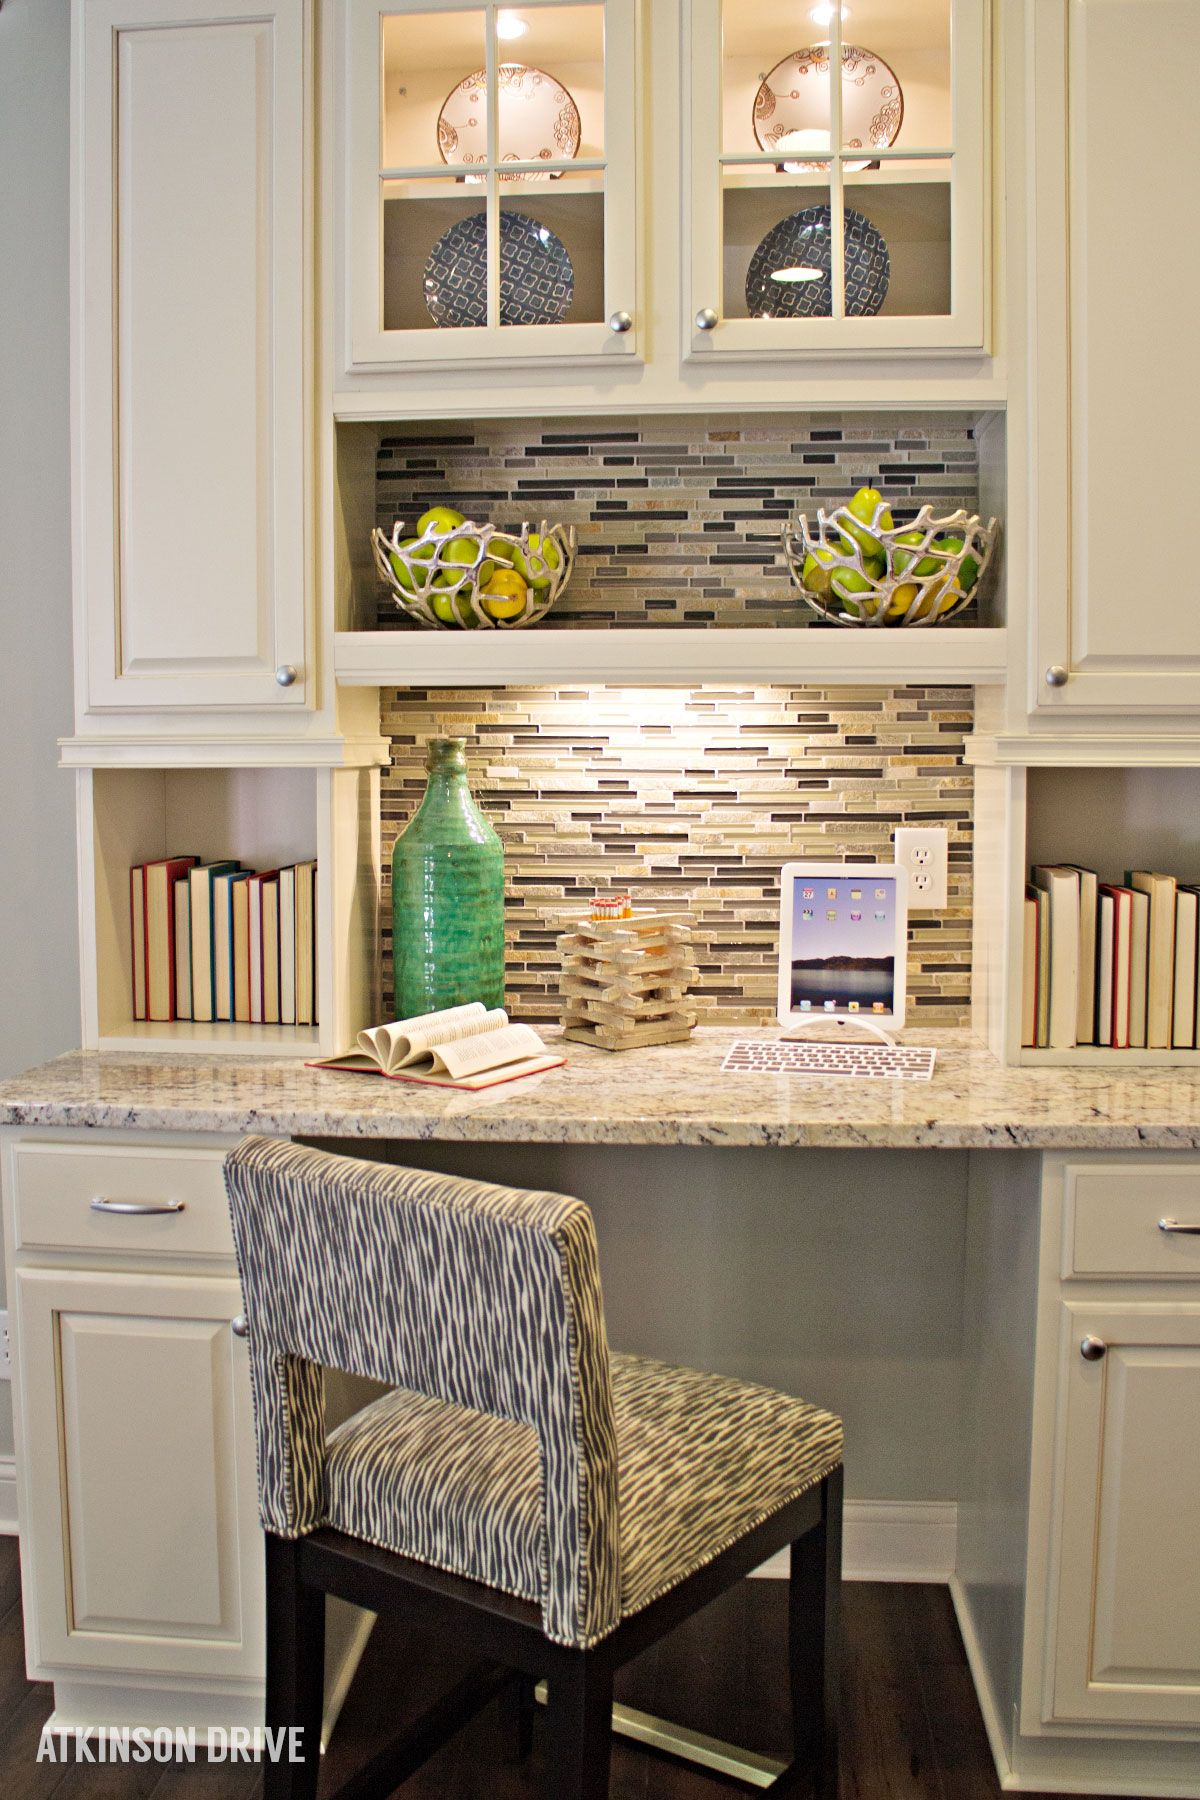 Lovely Home A Rama 2014: Family Command Center In The Kitchen | Atkinson Drive